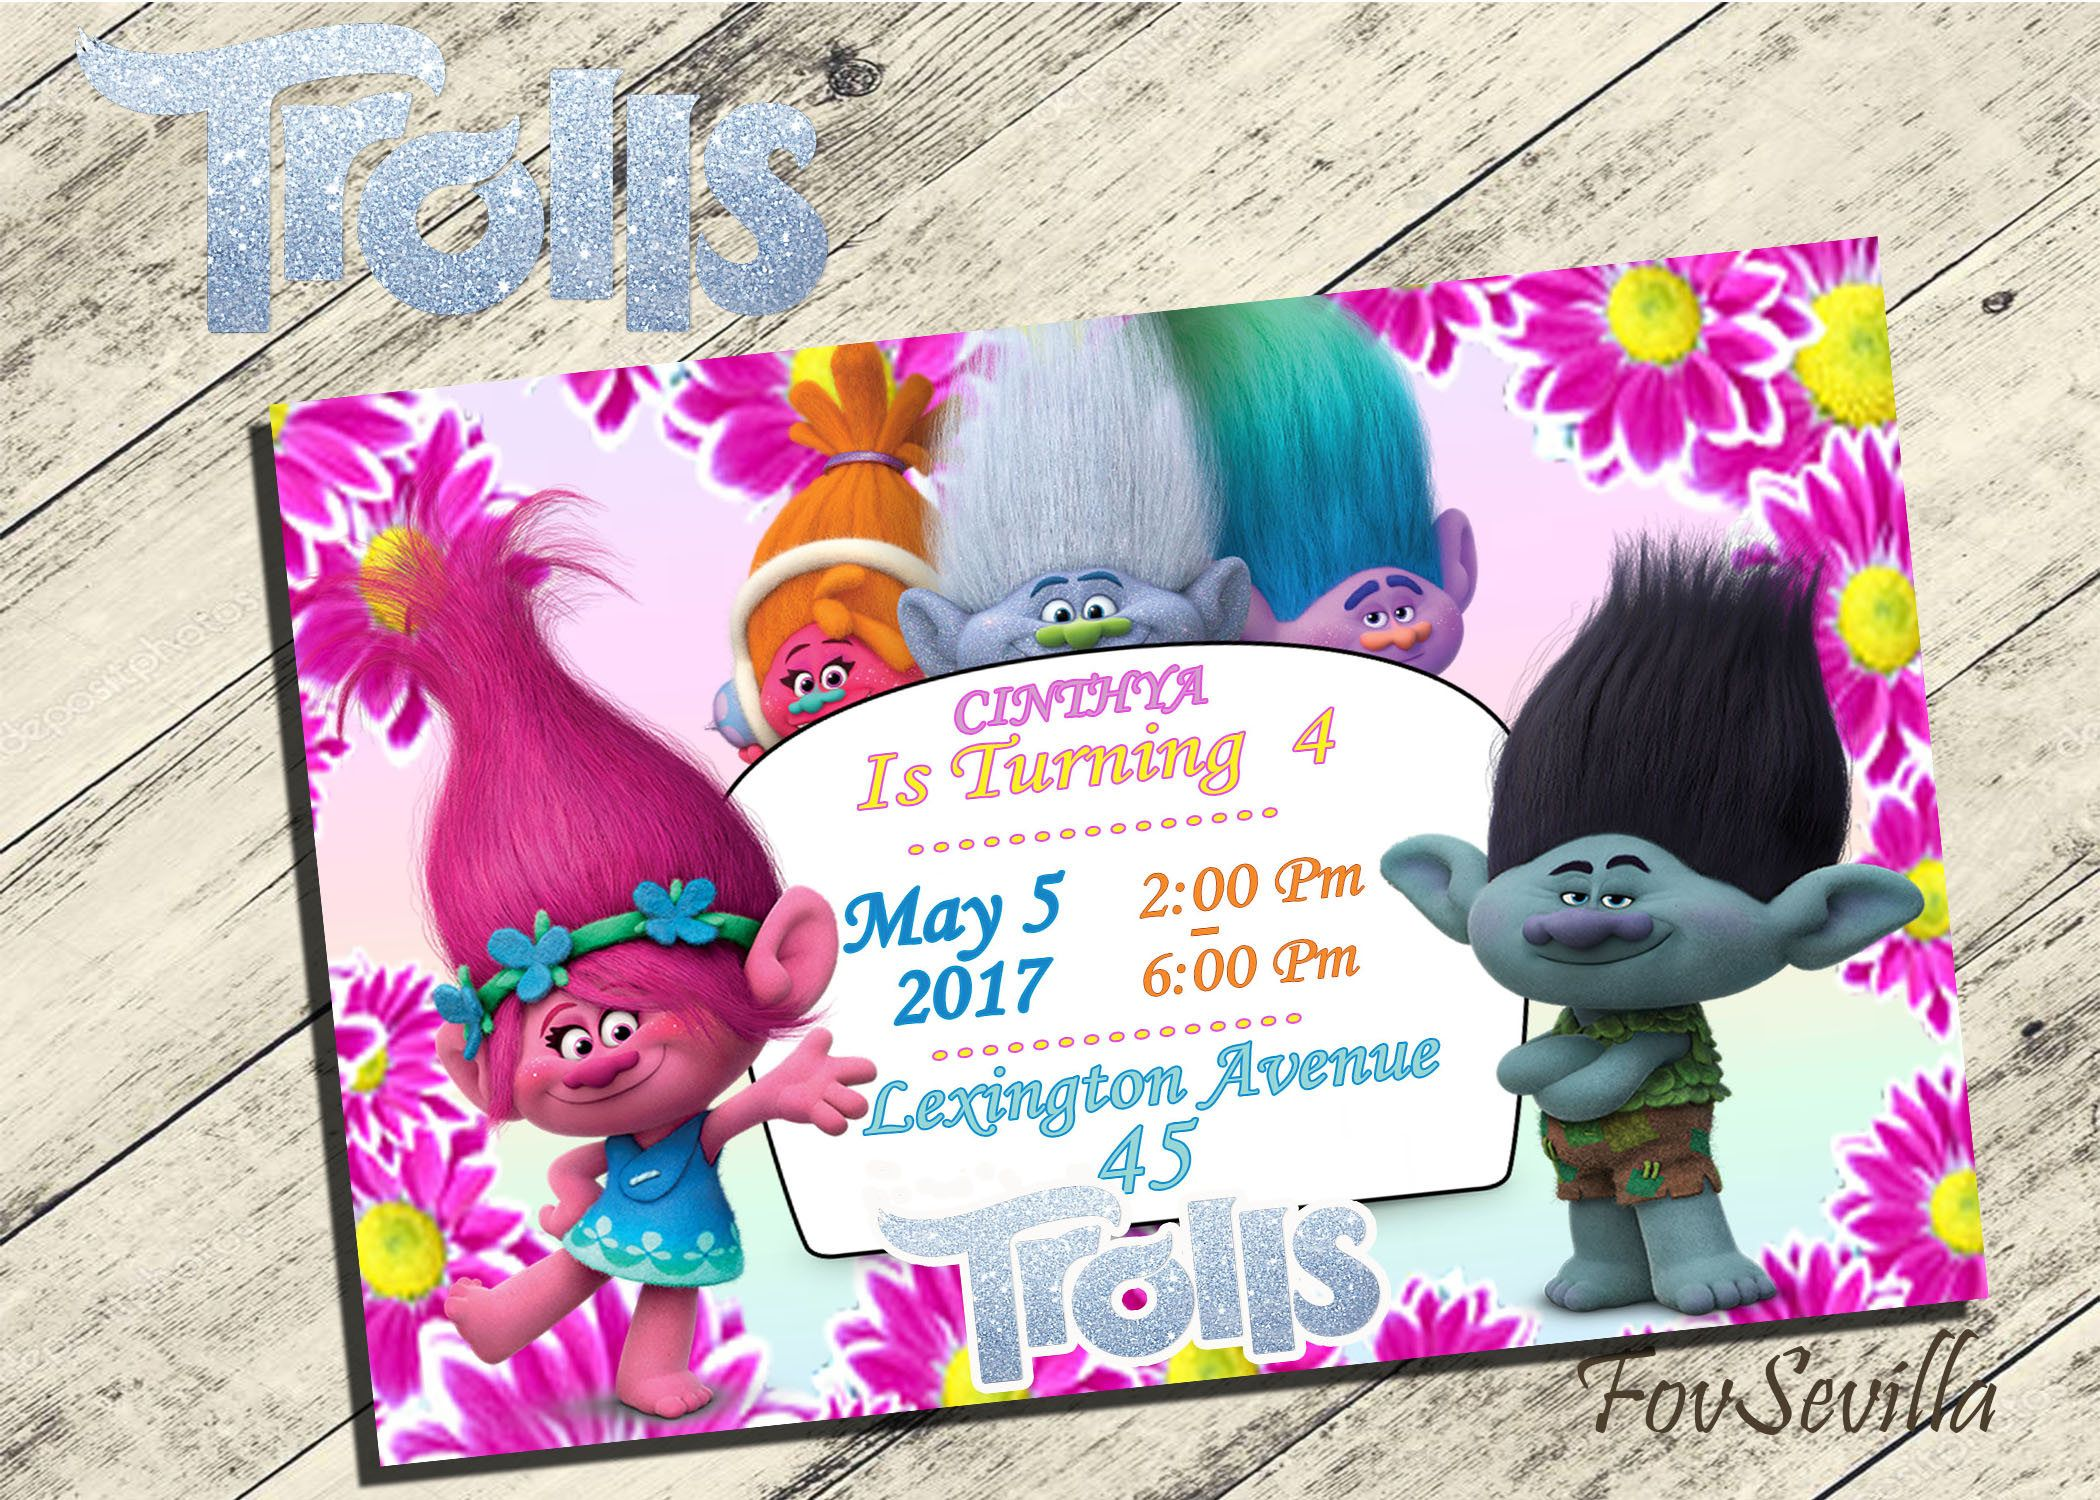 bday party invitation mail%0A text message invitation birthday party Trolls invitation troll birthday  invitation poppy invitation poppy birthday invitation trolls